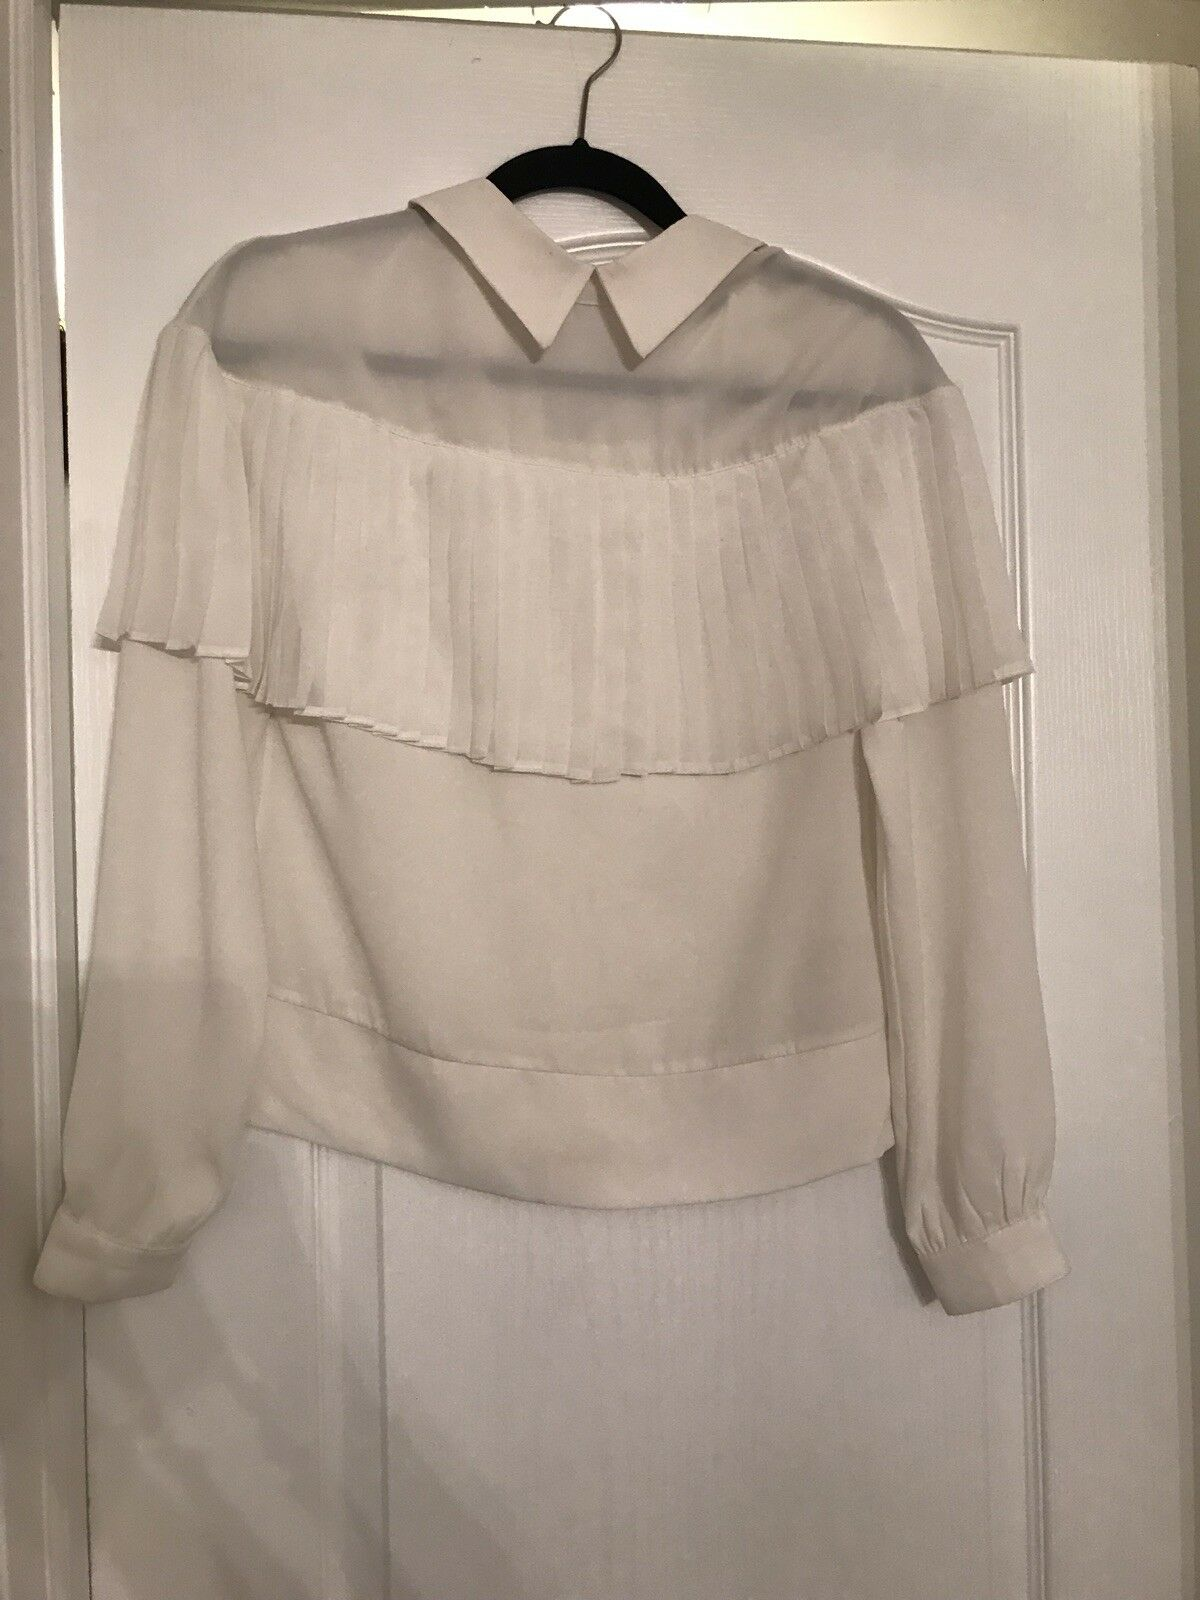 Belissa Weiß Blouse With Accordian Pleats NWT